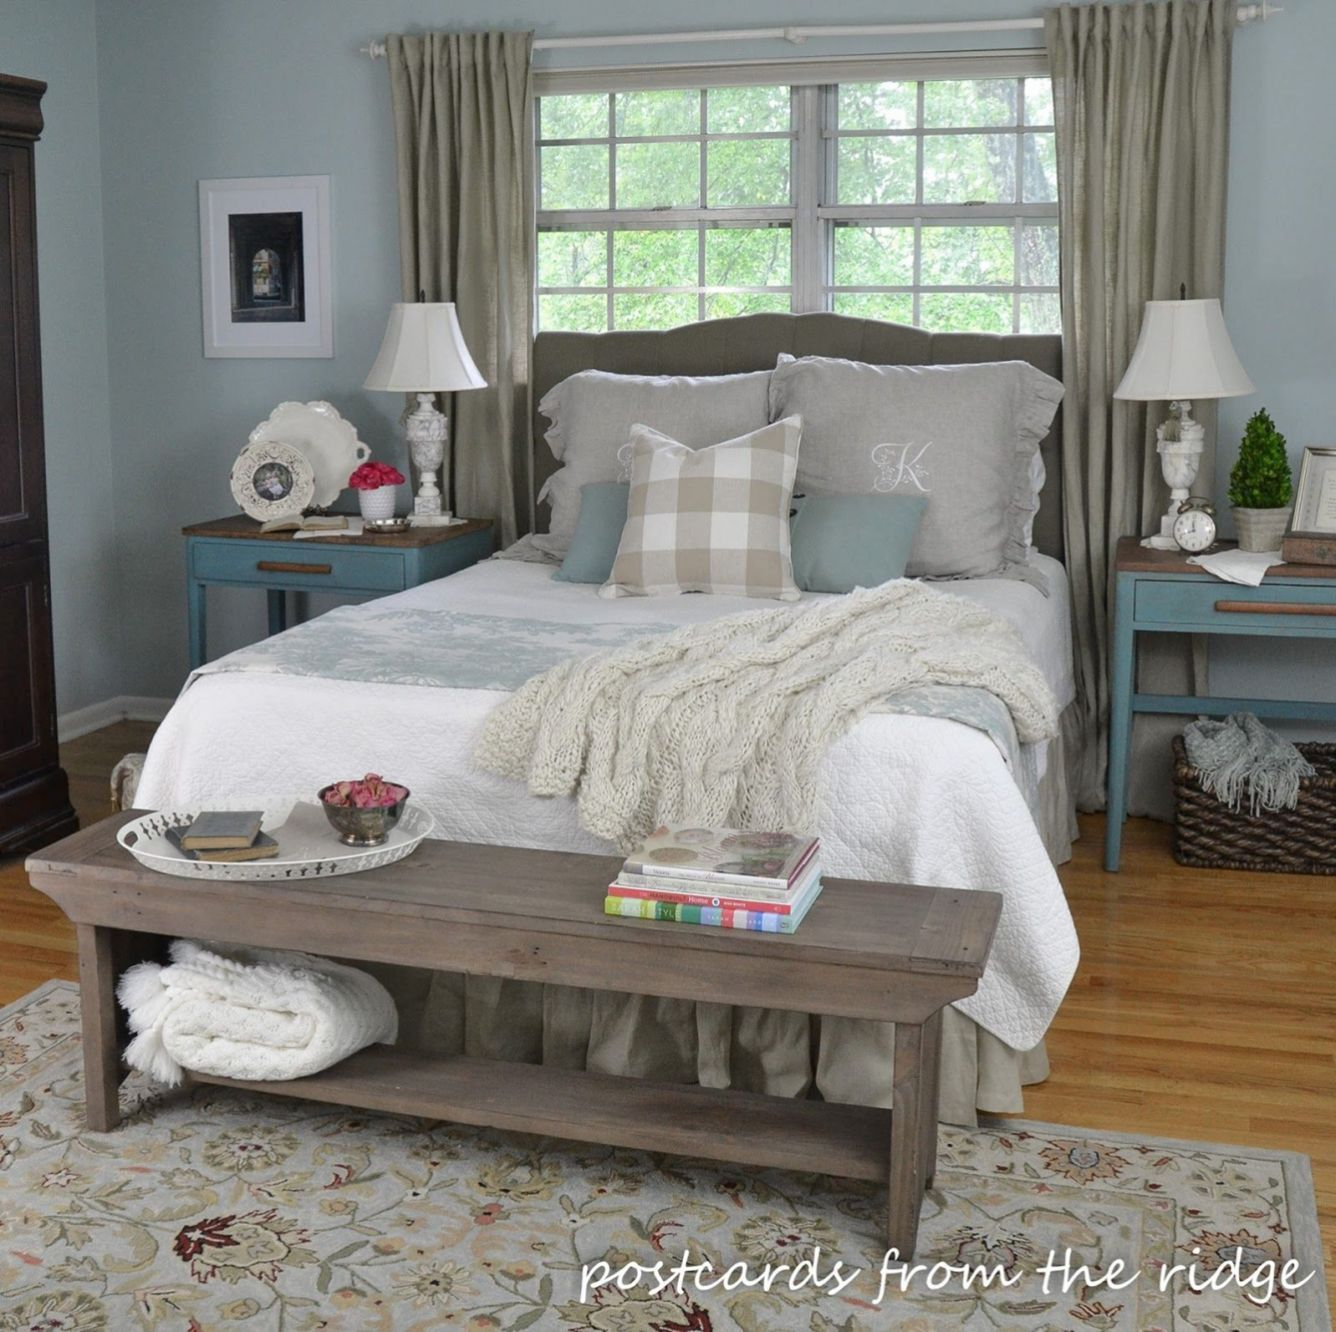 50 Sleigh Bed Inspirations For A Cozy Modern Bedroom: Gorgeous 50 Farmhouse Bedroom Design And Decor Ideas